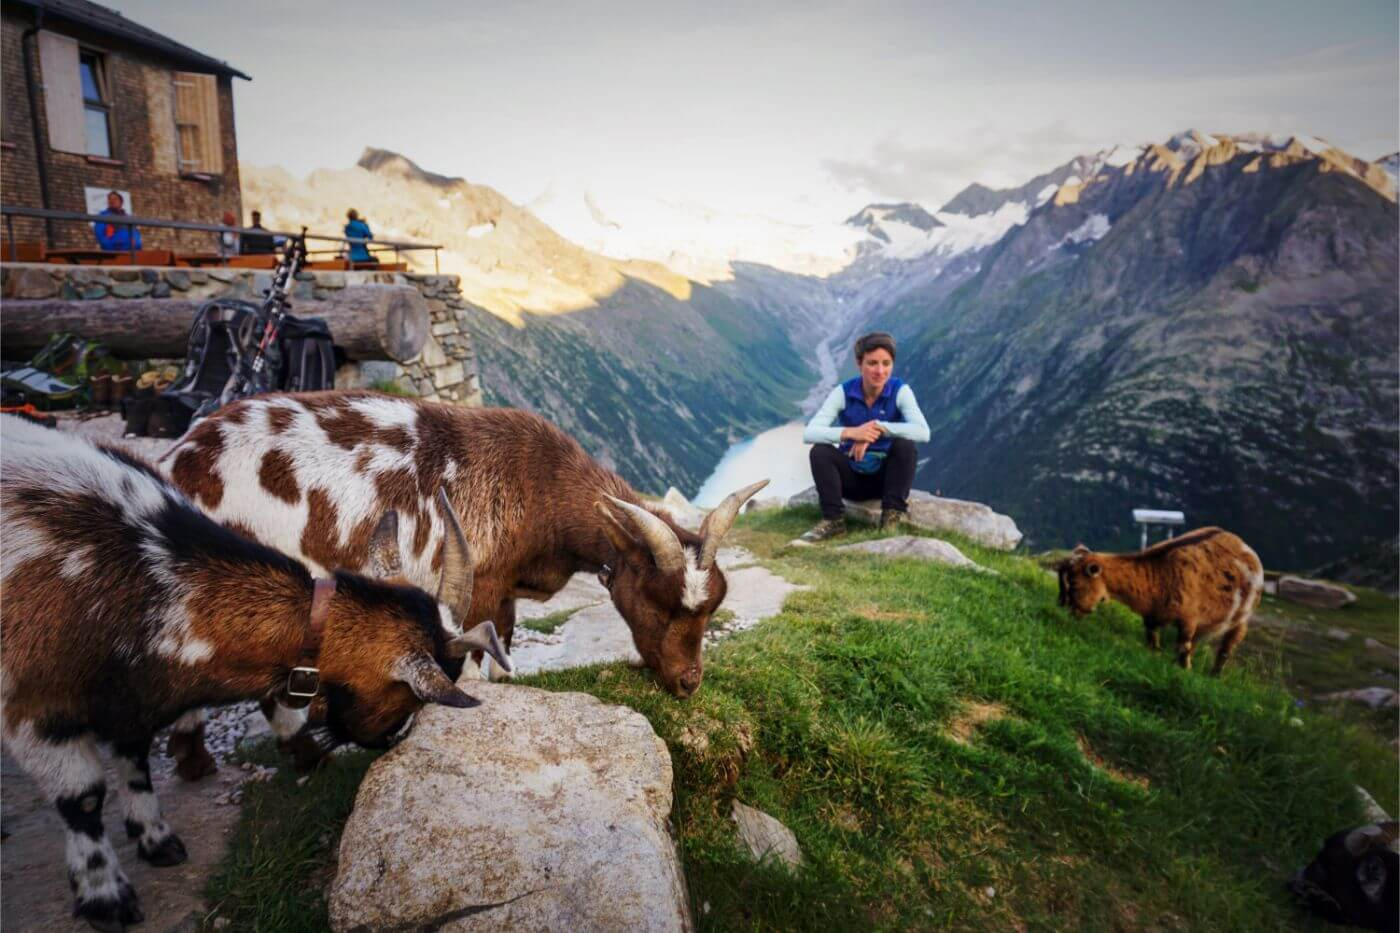 Goats at Olperer Hütte, Zillertal Alps, Austria - Berlin High Trail Packing List